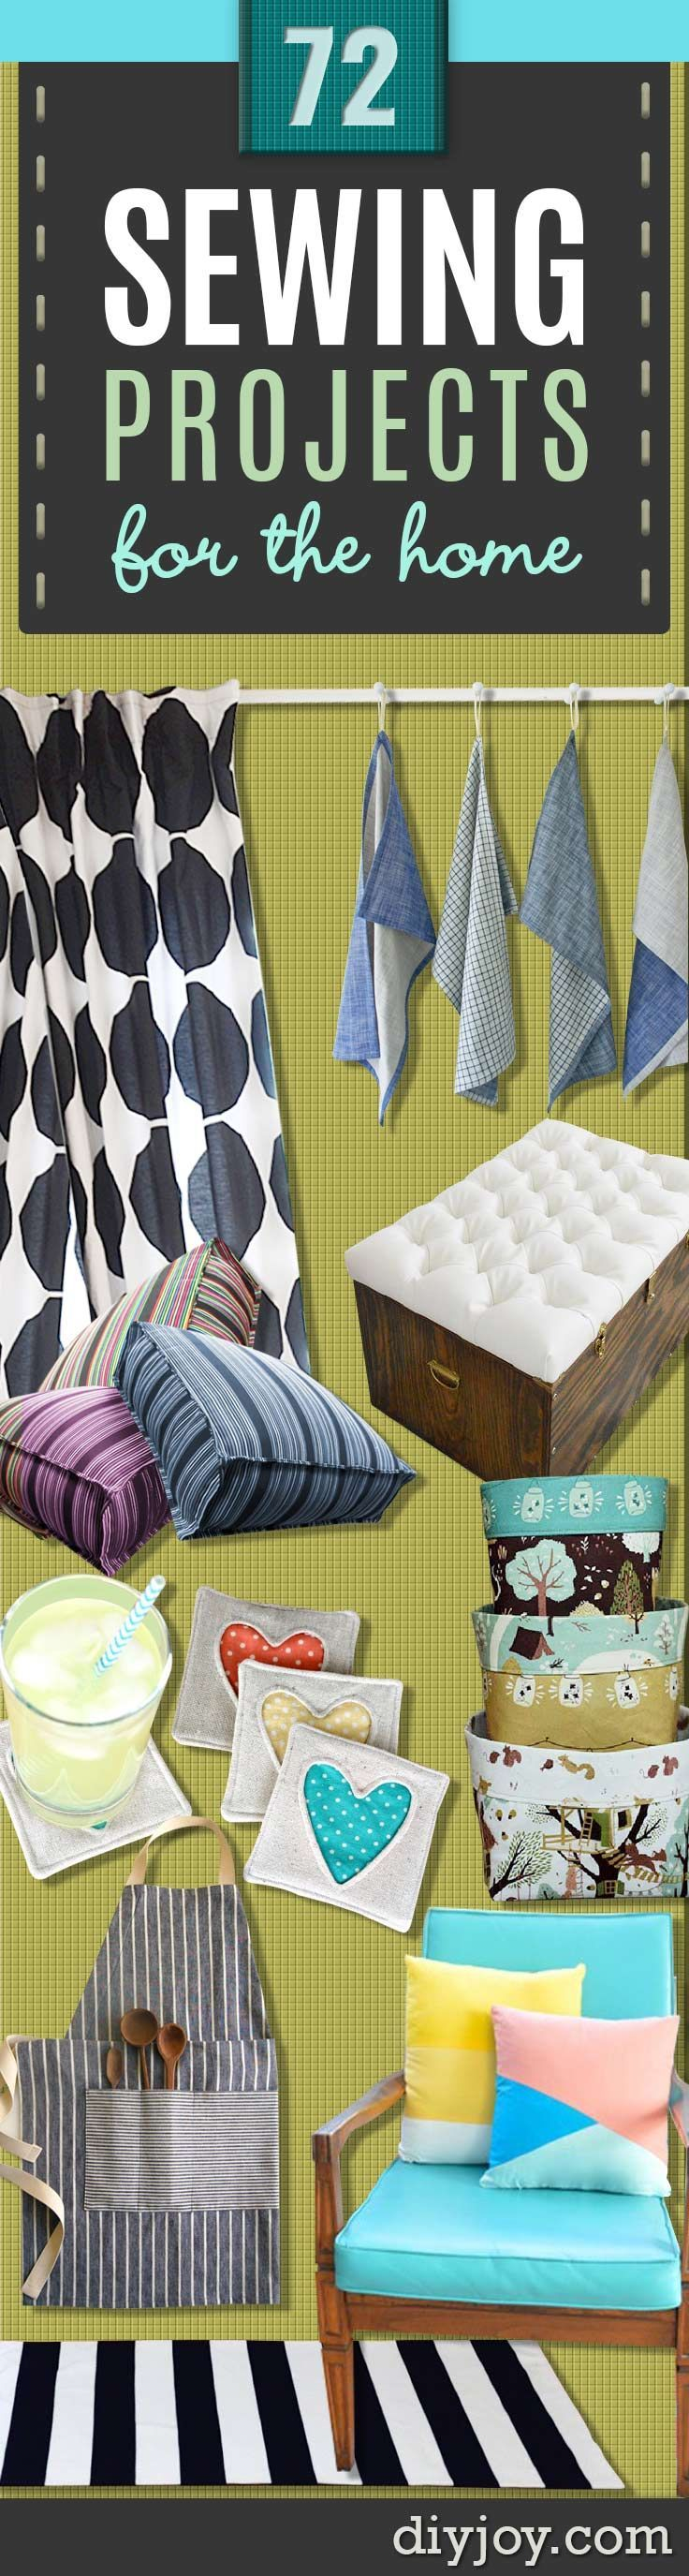 Sewing Projects for The Home - Free DIY Sewing Patterns, Easy Ideas and Tutorials for Curtains, Upholstery, Napkins, Pillows and Decor http://diyjoy.com/sewing-projects-for-the-home